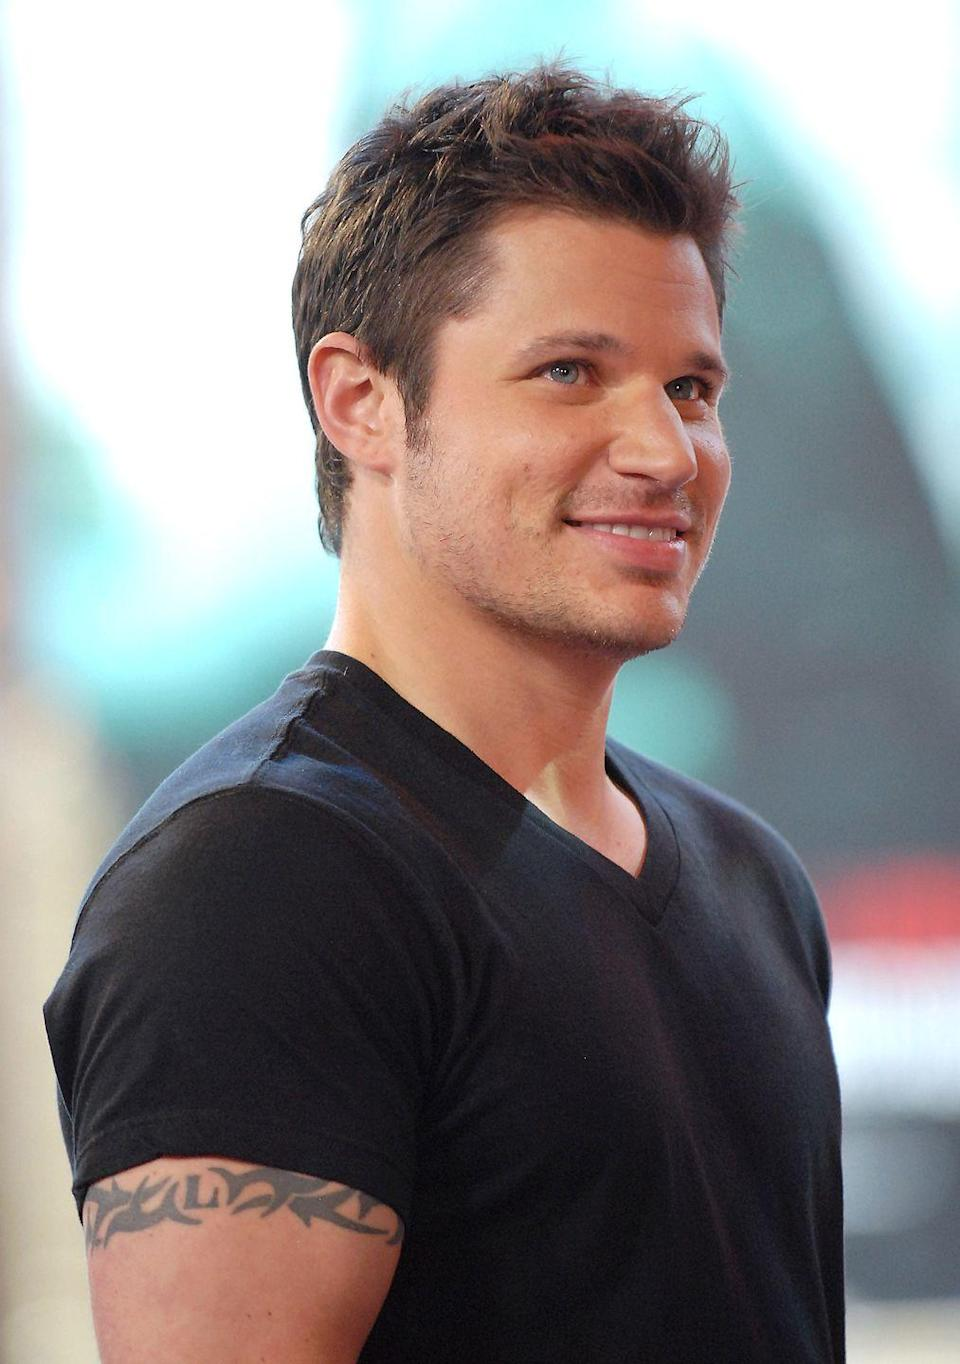 """<p>Nick Lachey (a.k.a. the lead singer of 98 Degrees) road the band's success in the late '90s all the way to the tattoo chair. The musician's upper right arm used to be blessed with a sun that said 98° in the middle, and it was a sad day for fans everywhere when <a href=""""https://www.eonline.com/news/872771/nick-lachey-pokes-fun-at-his-98-degrees-days-with-an-epic-blast-from-the-past"""" rel=""""nofollow noopener"""" target=""""_blank"""" data-ylk=""""slk:Nick got the sun filled in"""" class=""""link rapid-noclick-resp"""">Nick got the sun filled in</a>, covering up the band's name. To be fair though, for a while there, it did seem like the Boy Band era was going to last forever.</p>"""